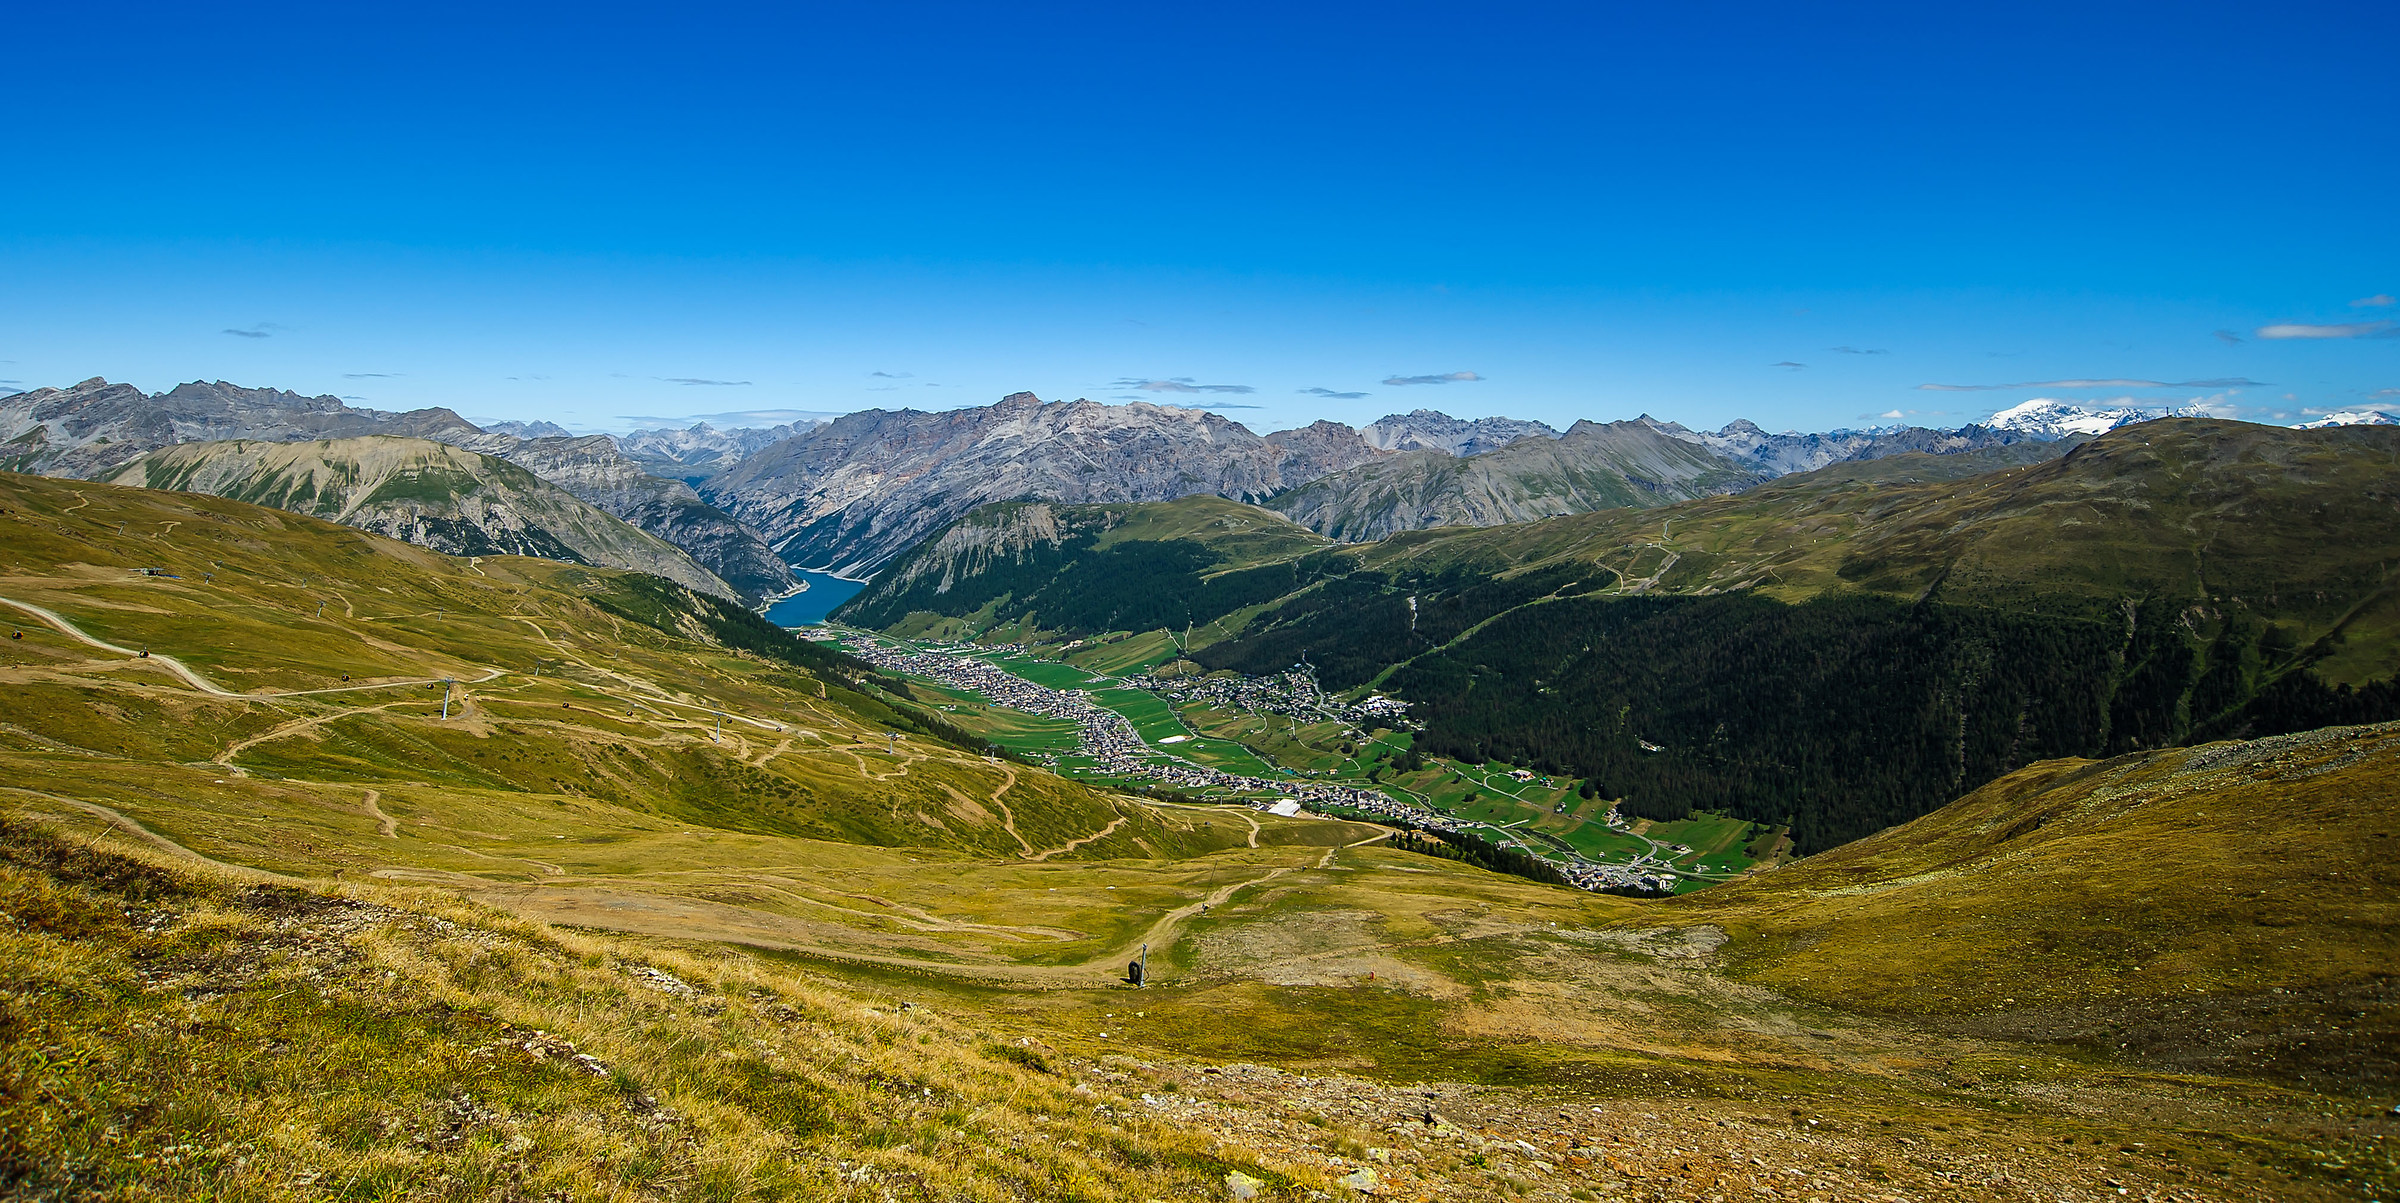 The valley of Livigno surrounded by its mountains...